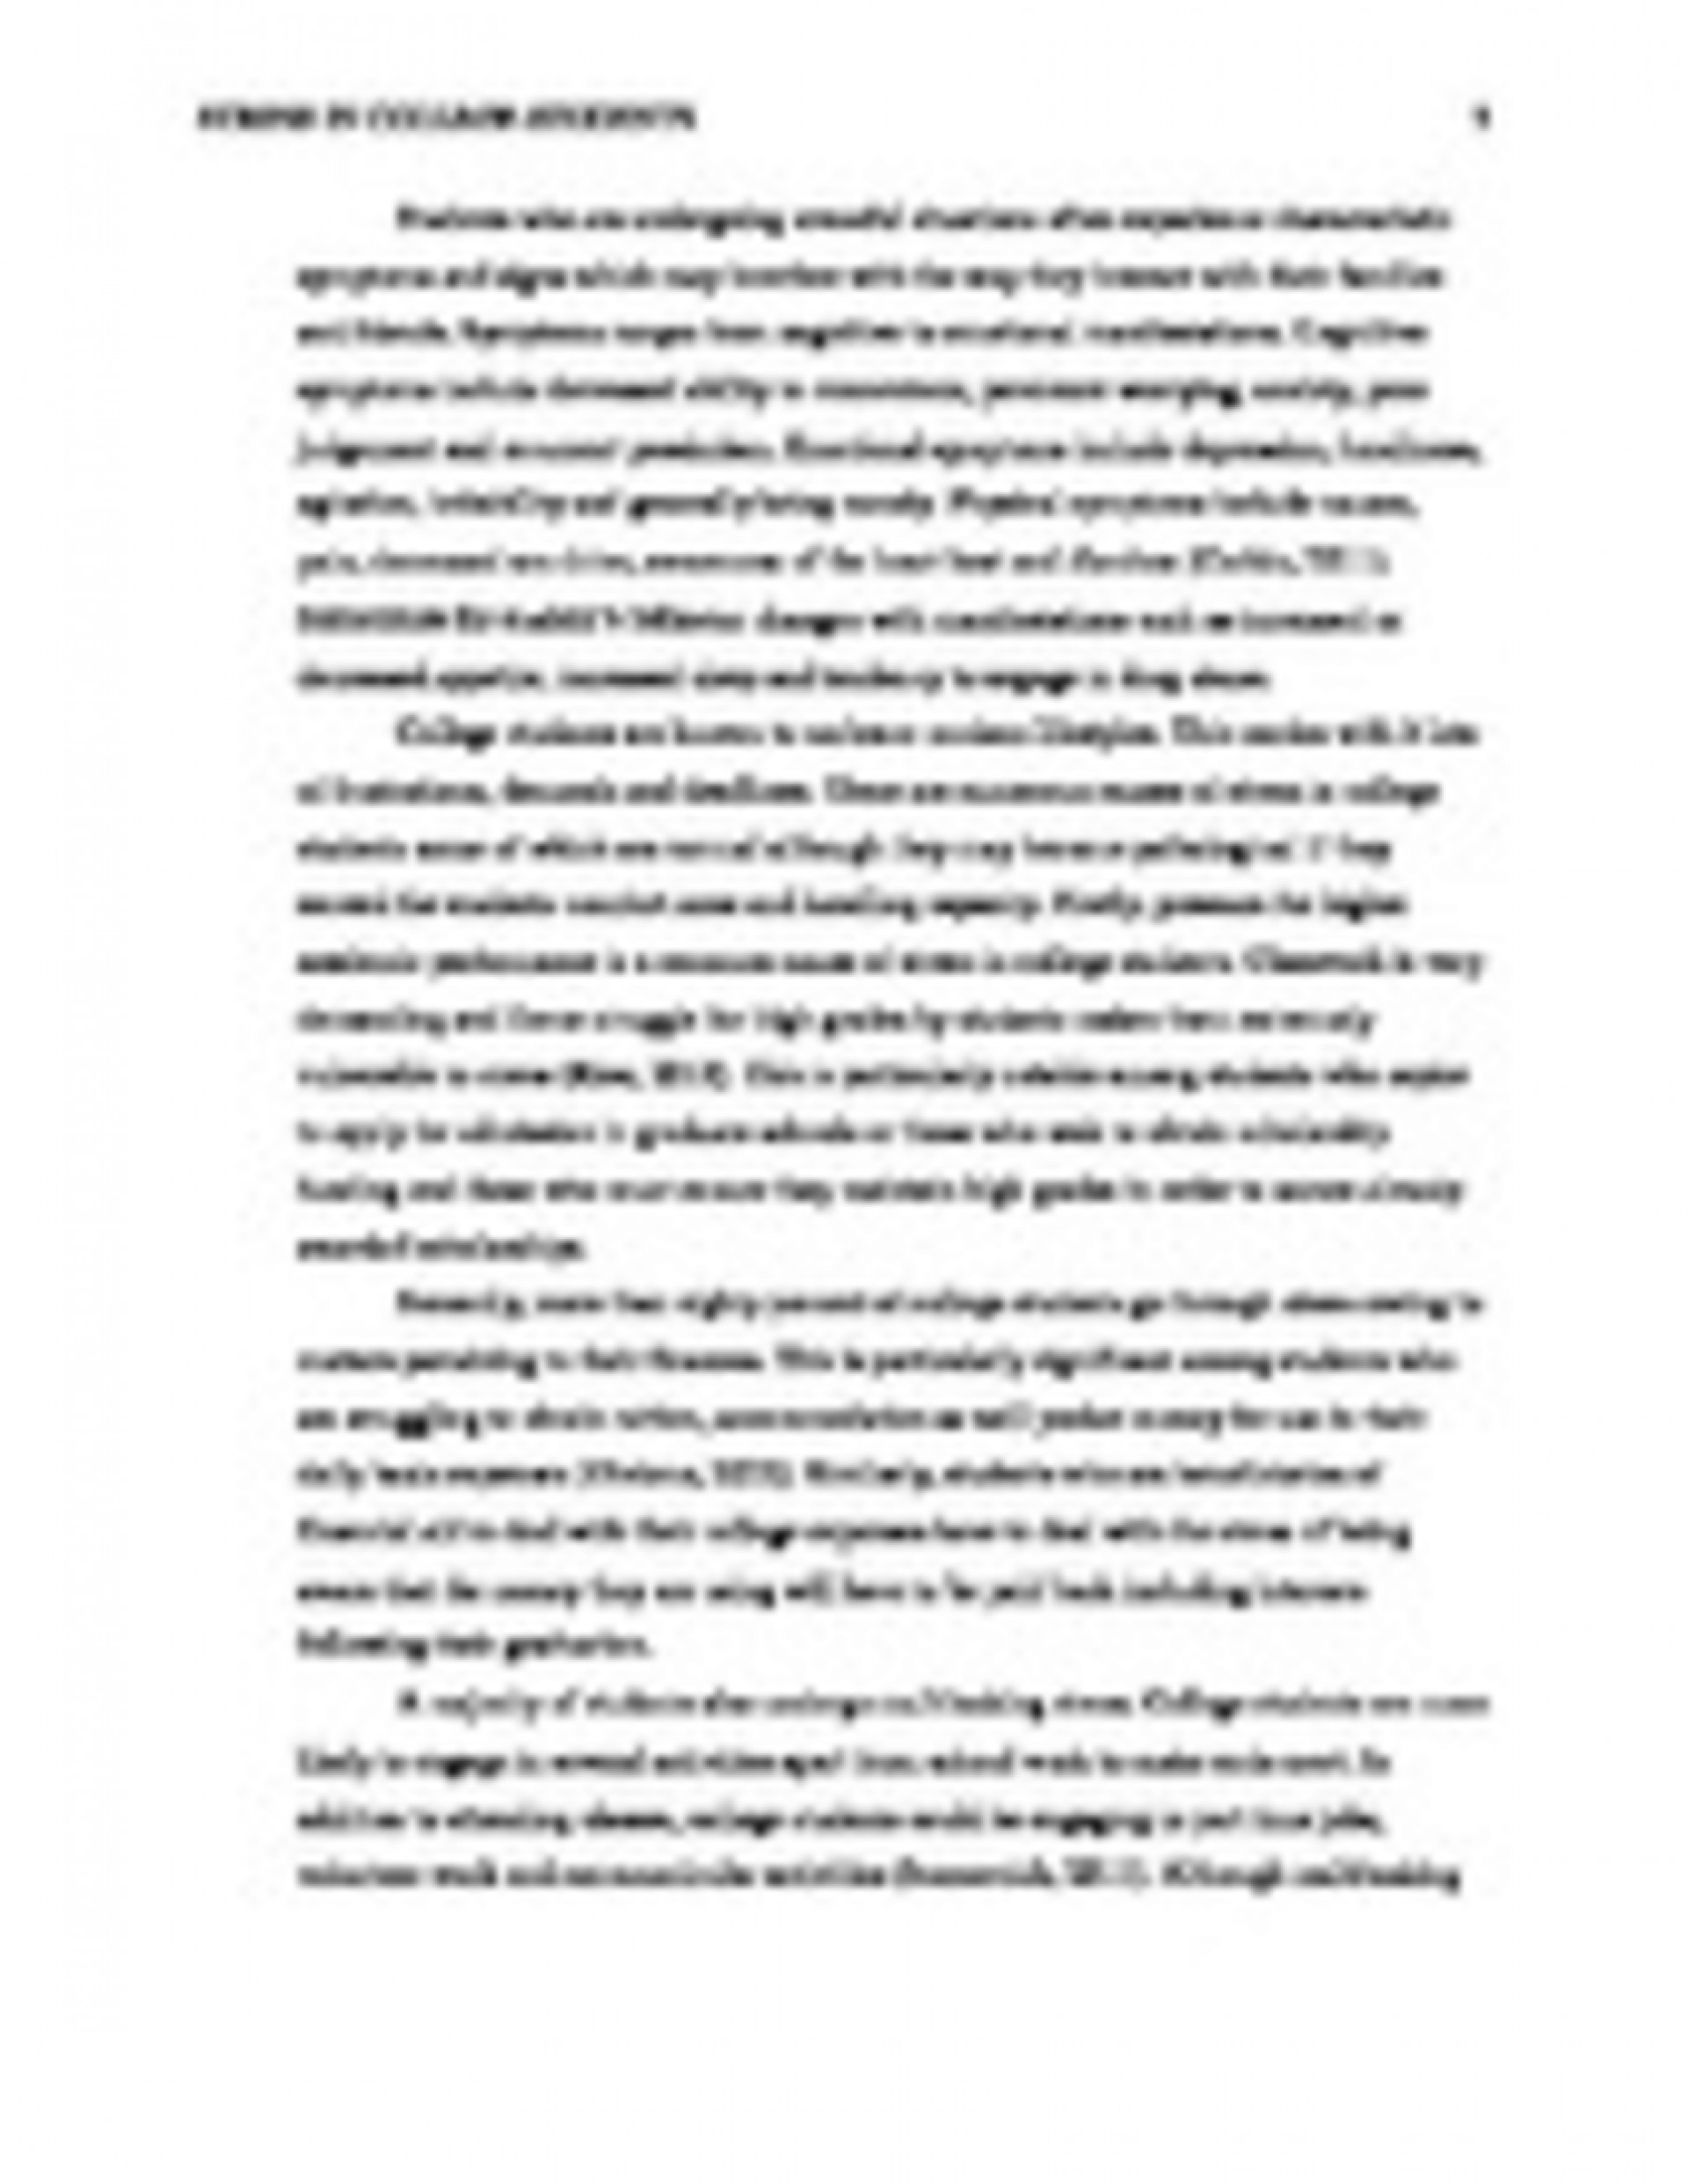 002 Stress Management Complete  Copypage2 Essay Awesome Outline Impact On Health Cause And Effect College Students1920